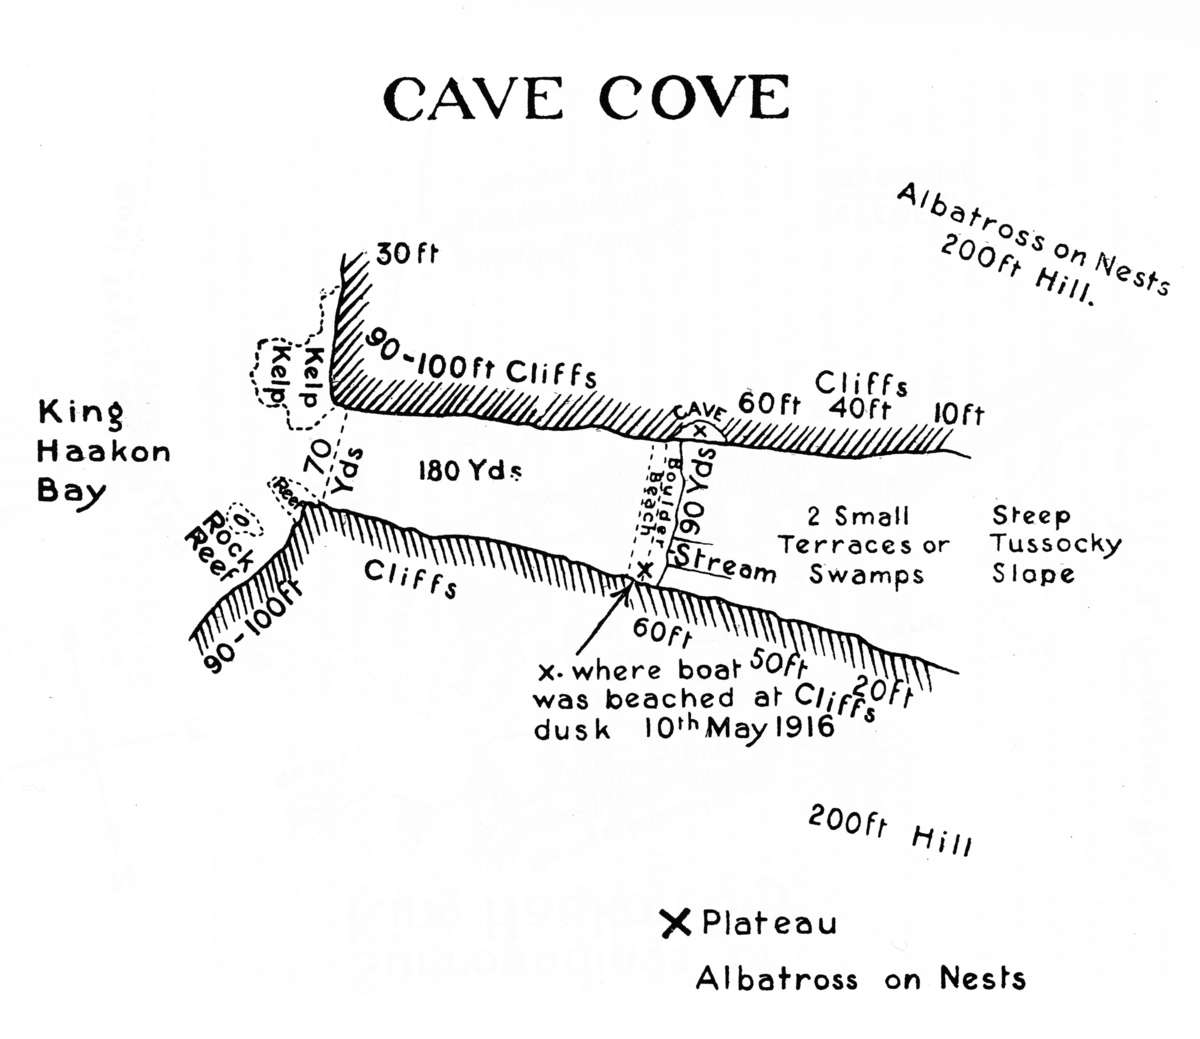 Map of Cave Cove